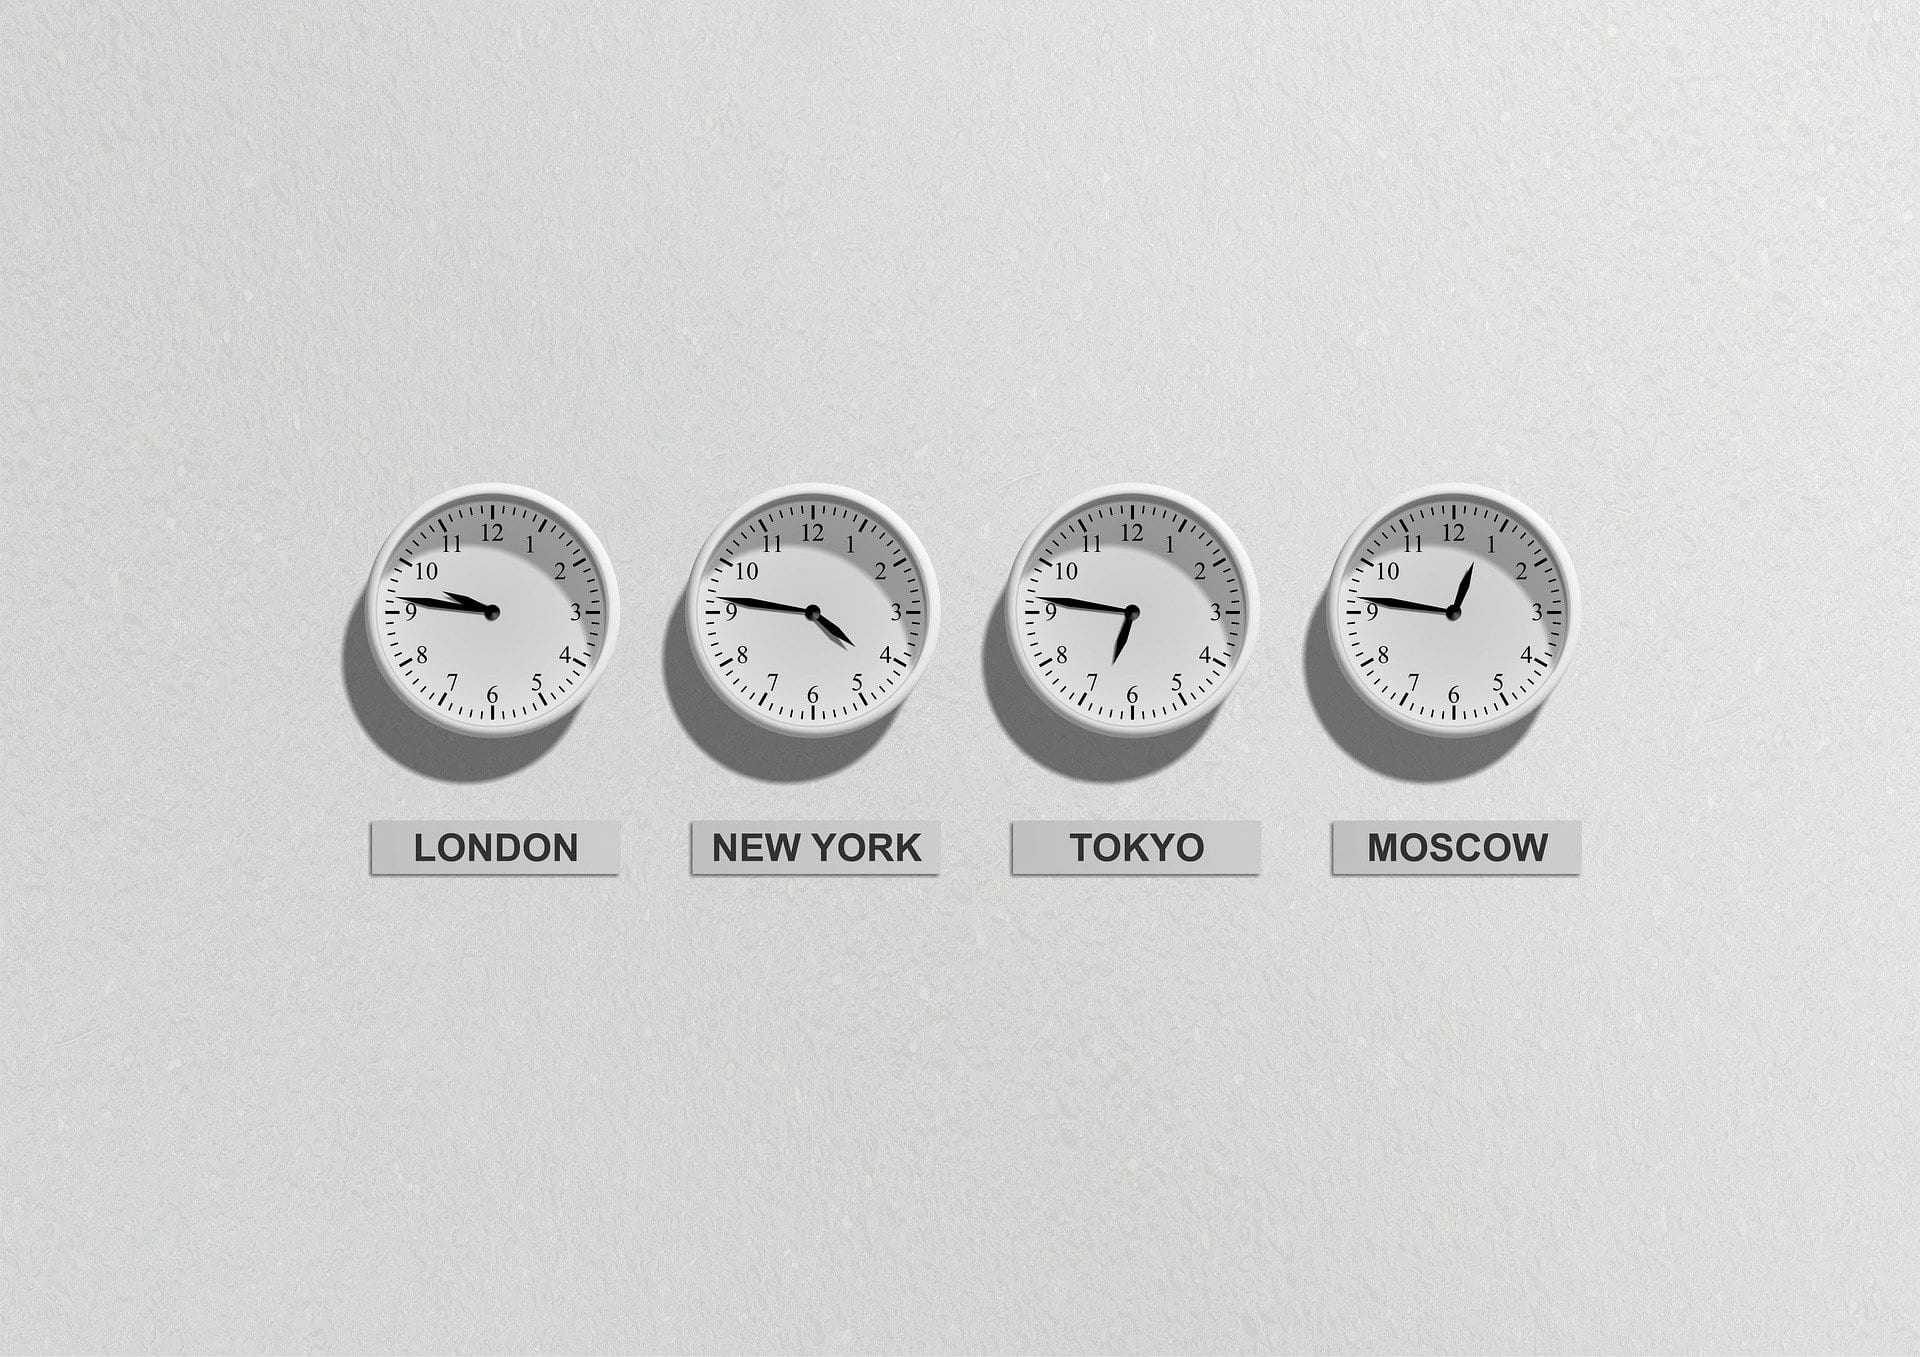 Four clocks on a wall telling the time in different cities